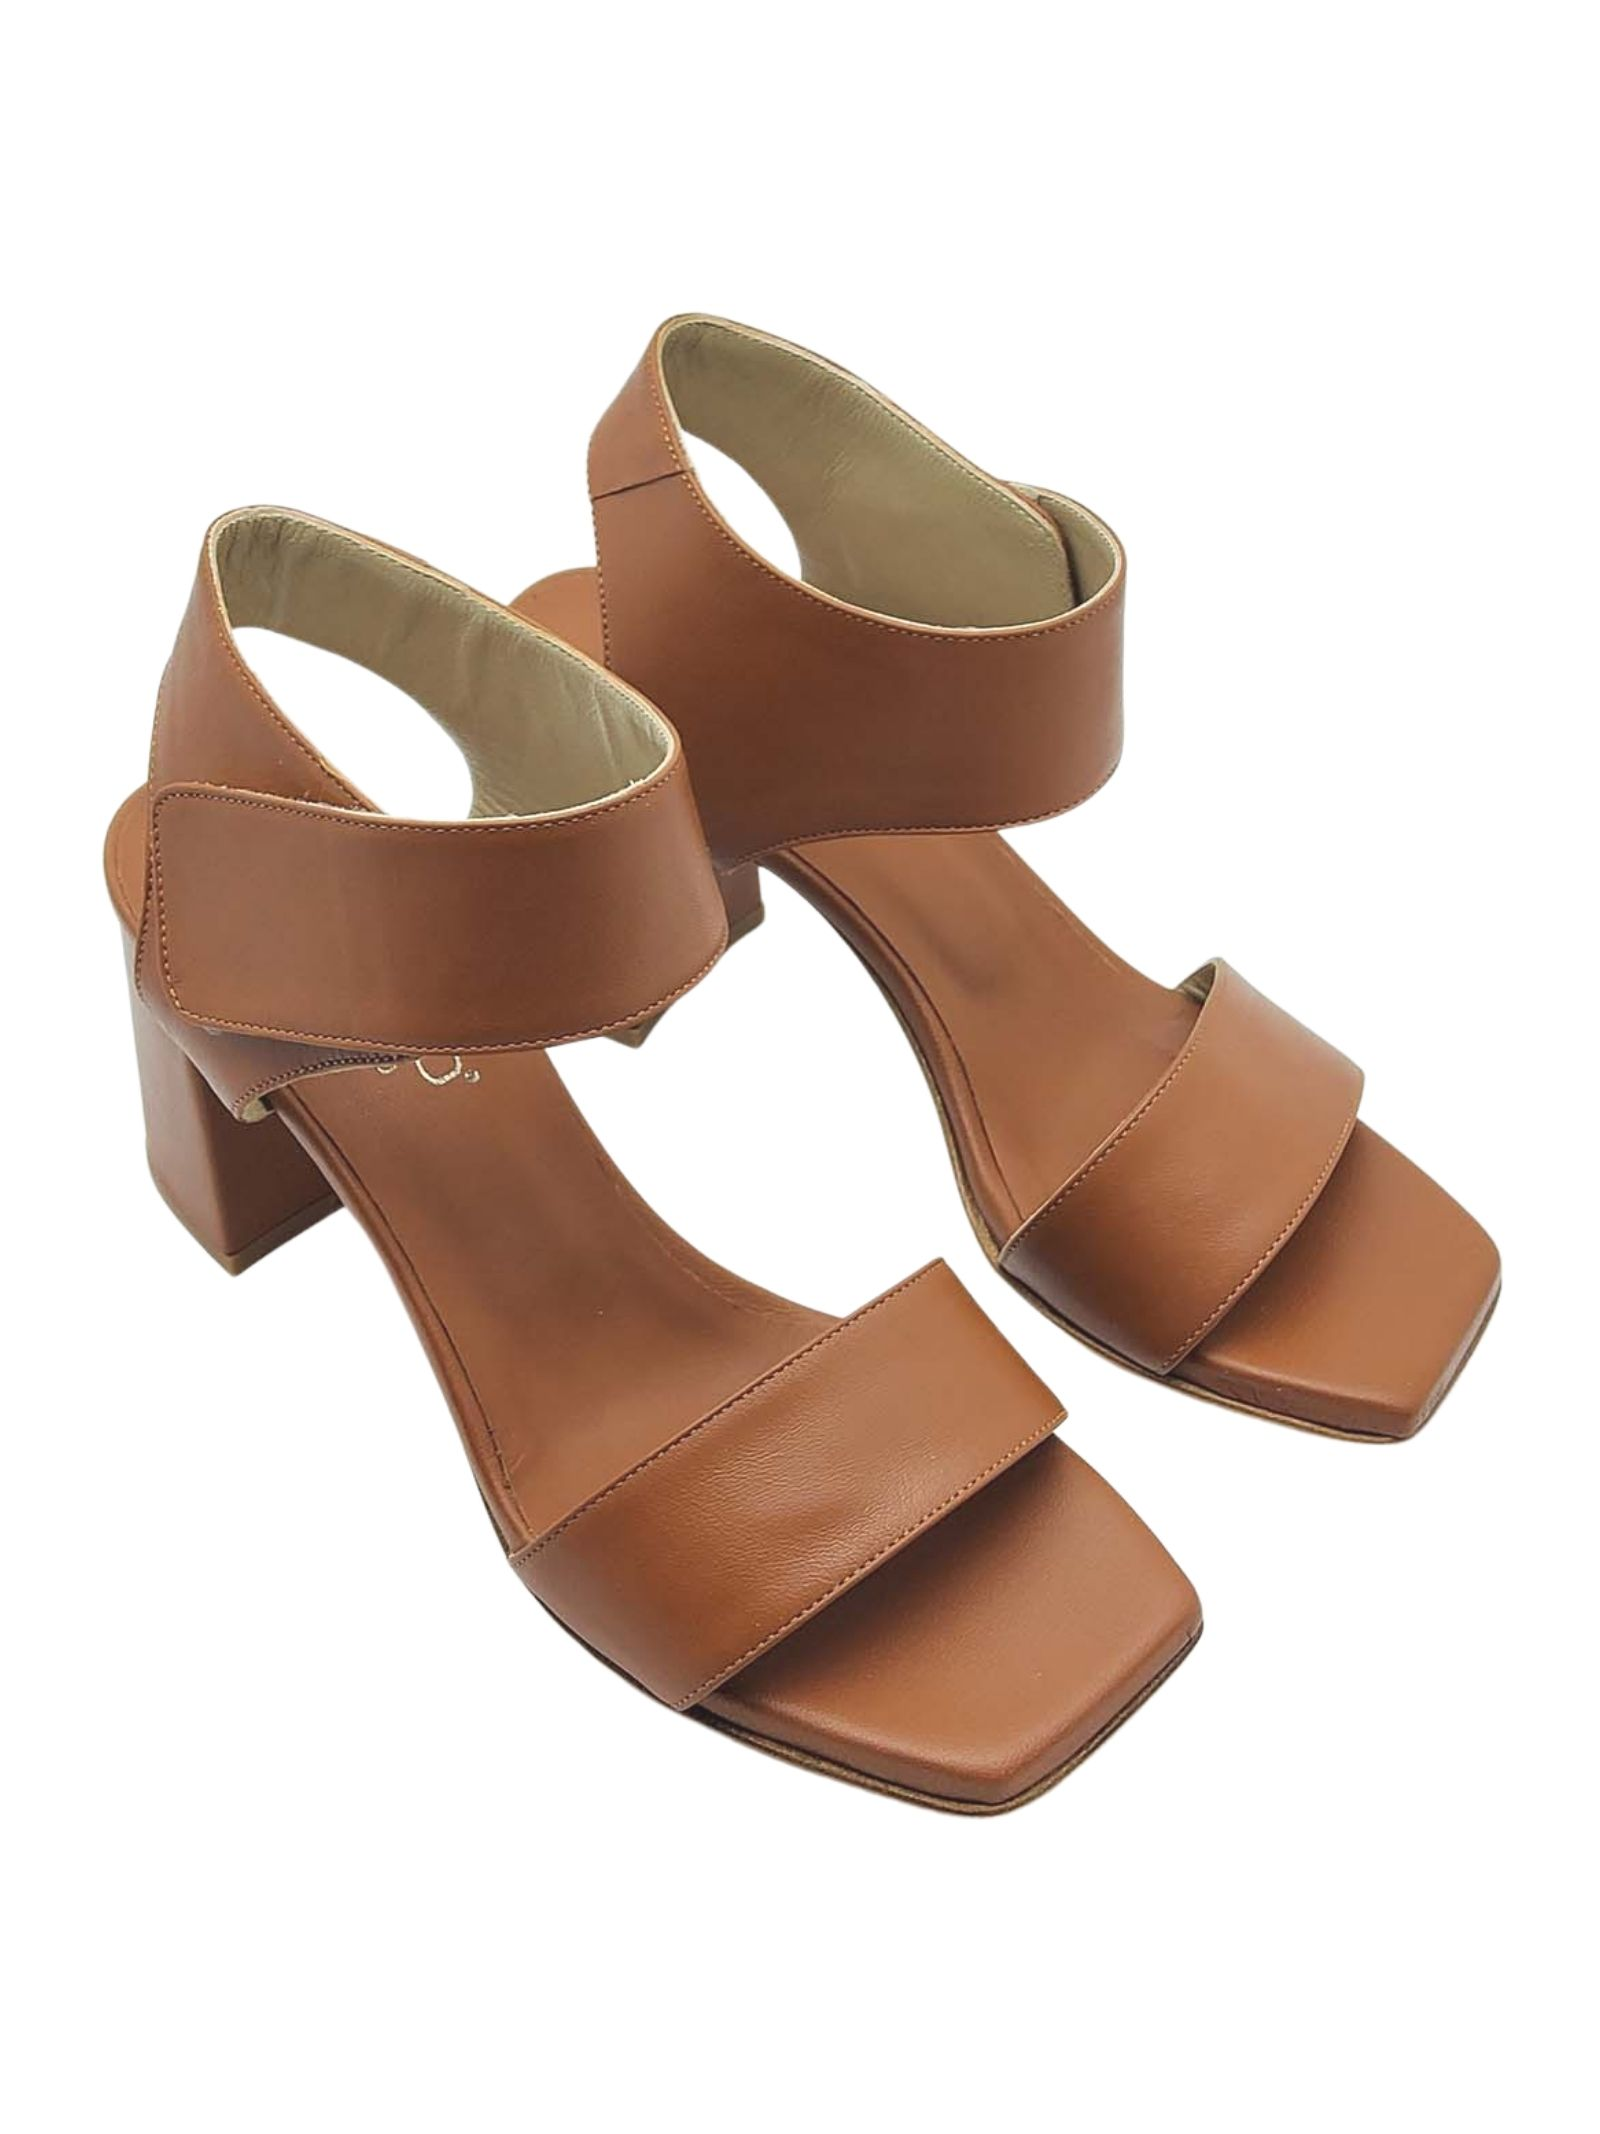 Women's Shoes Leather Sandals with High Heel Strap and Square Toe Tattoo | Sandals | 109014